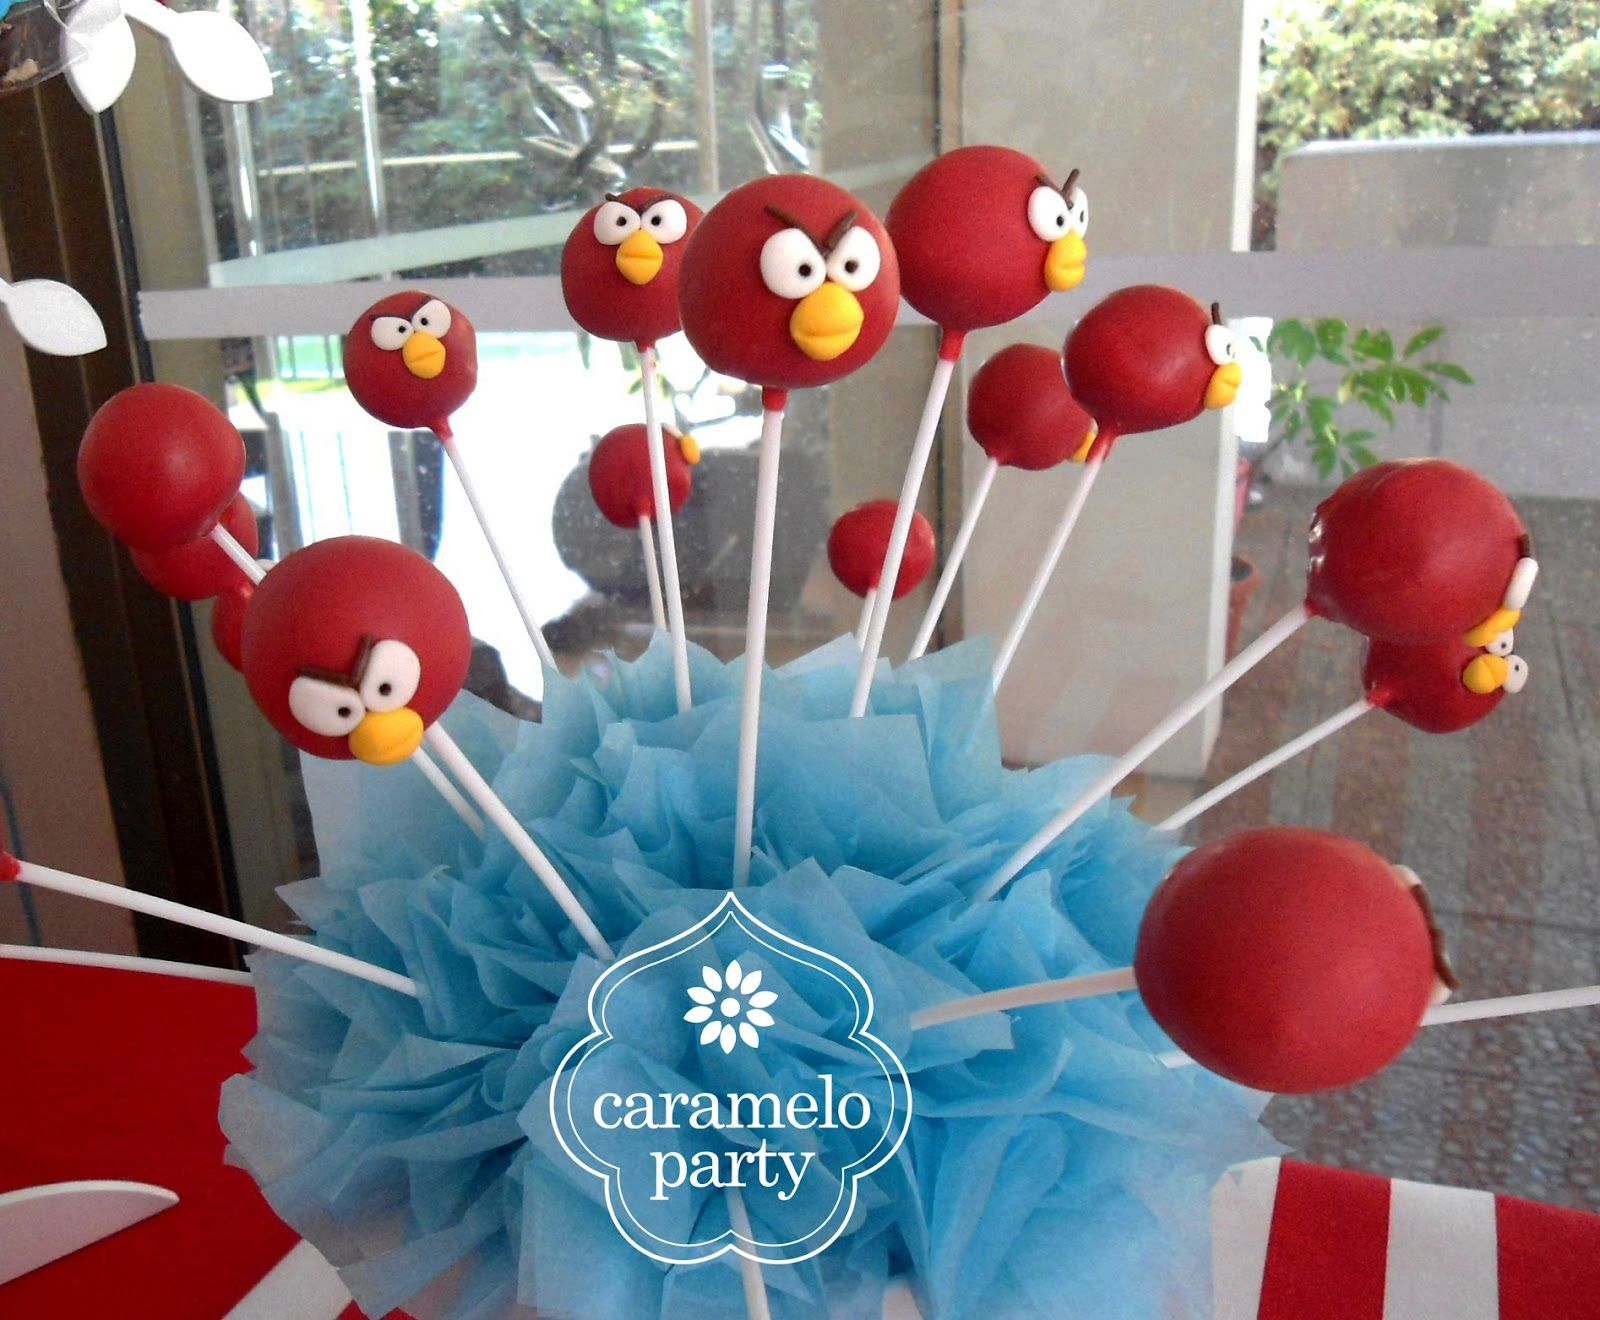 Caramelo Party: Fiesta Red Angry Bird